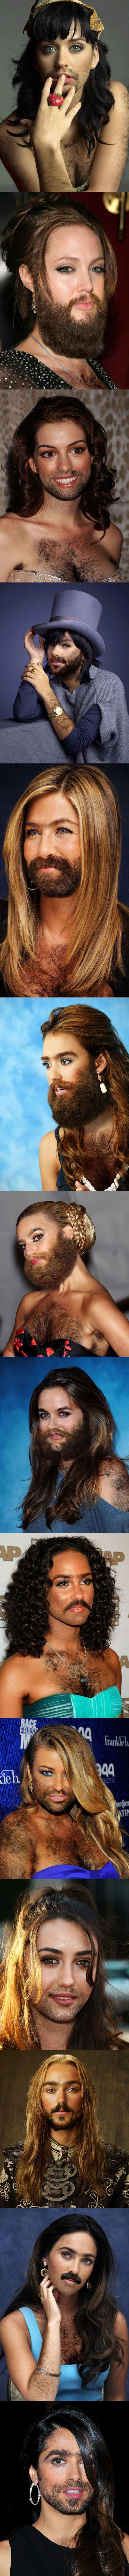 Famous Woman With Beards